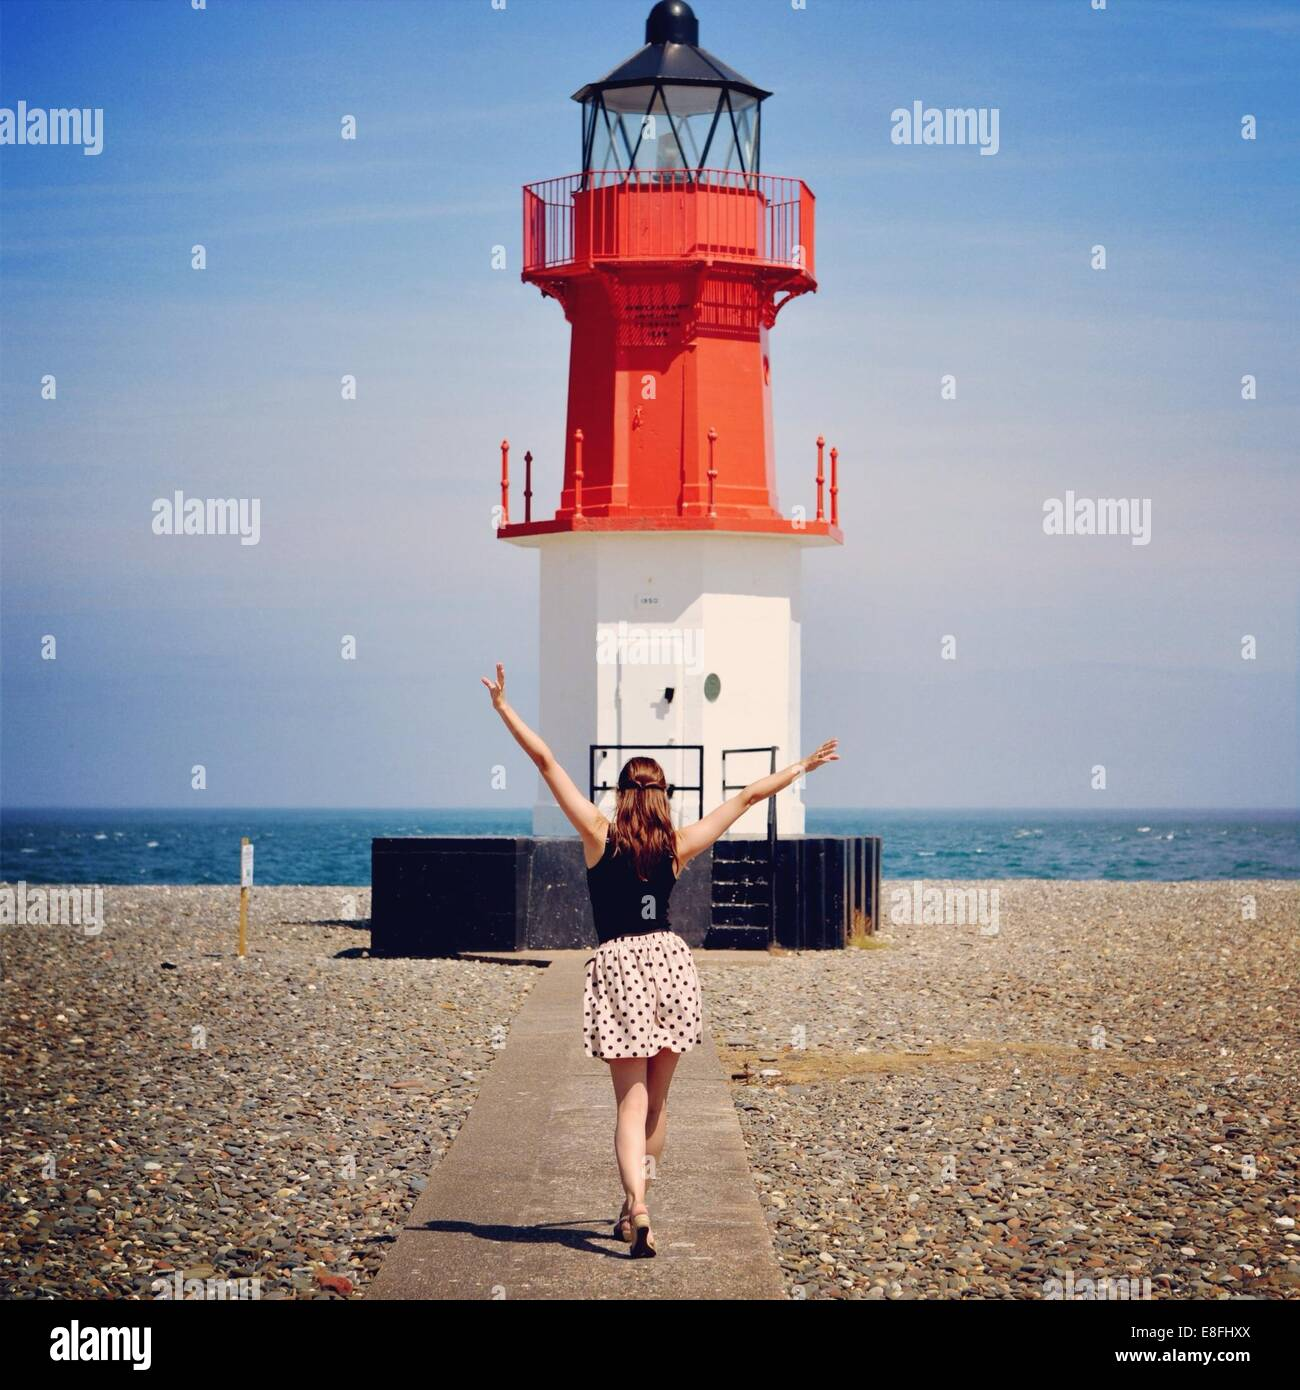 Woman standing in front of lighthouse - Stock Image